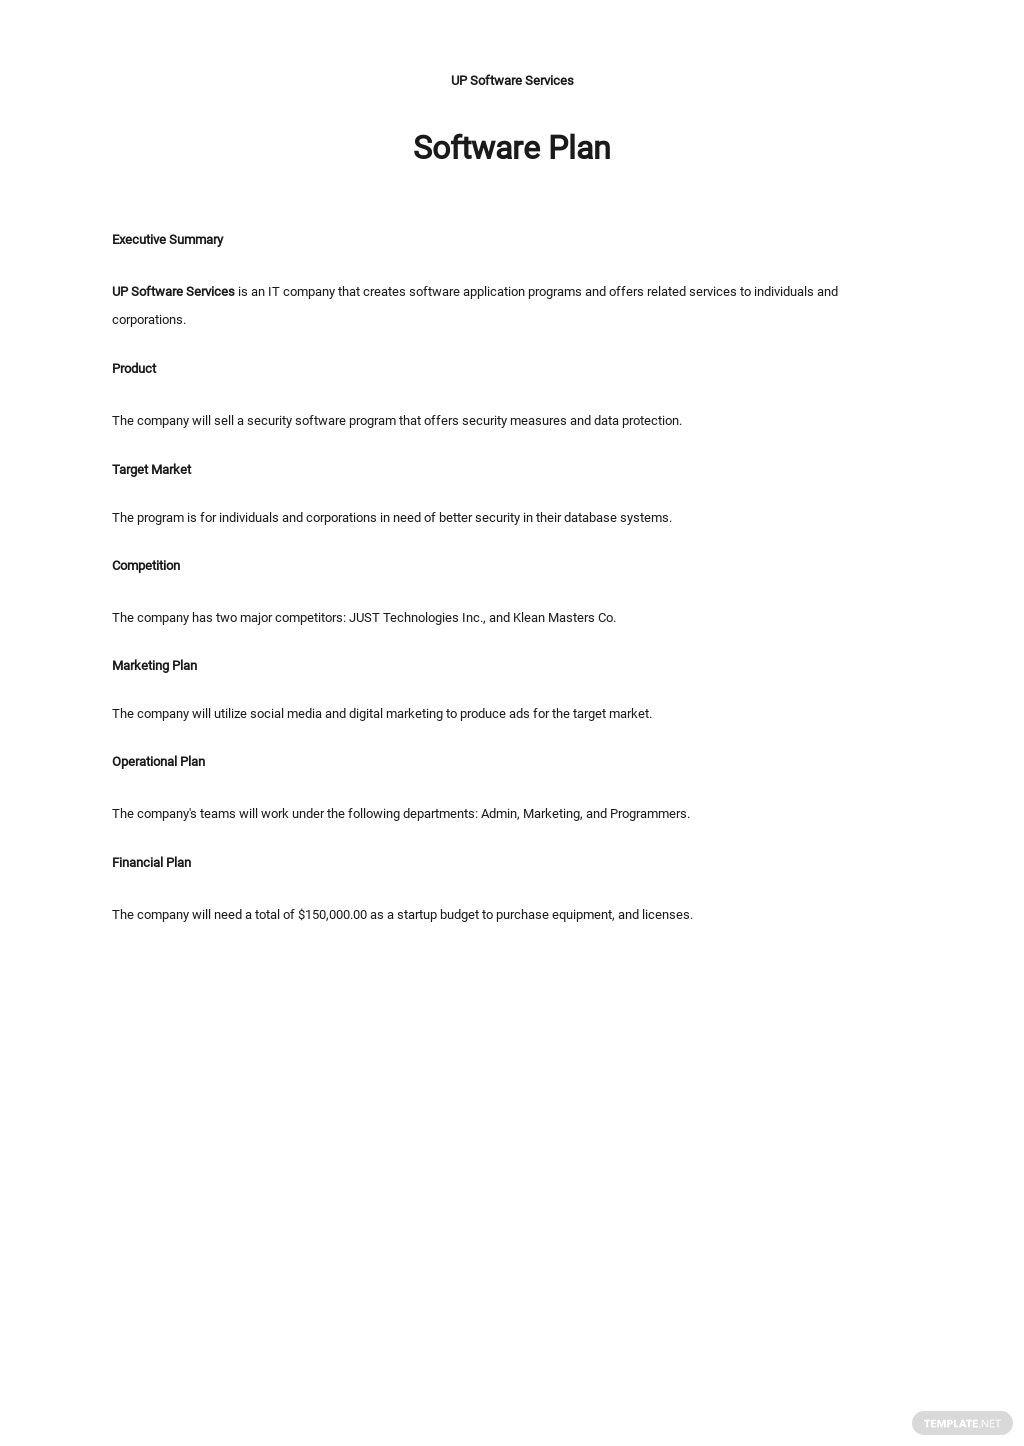 Free One Page Software Plan Template.jpe